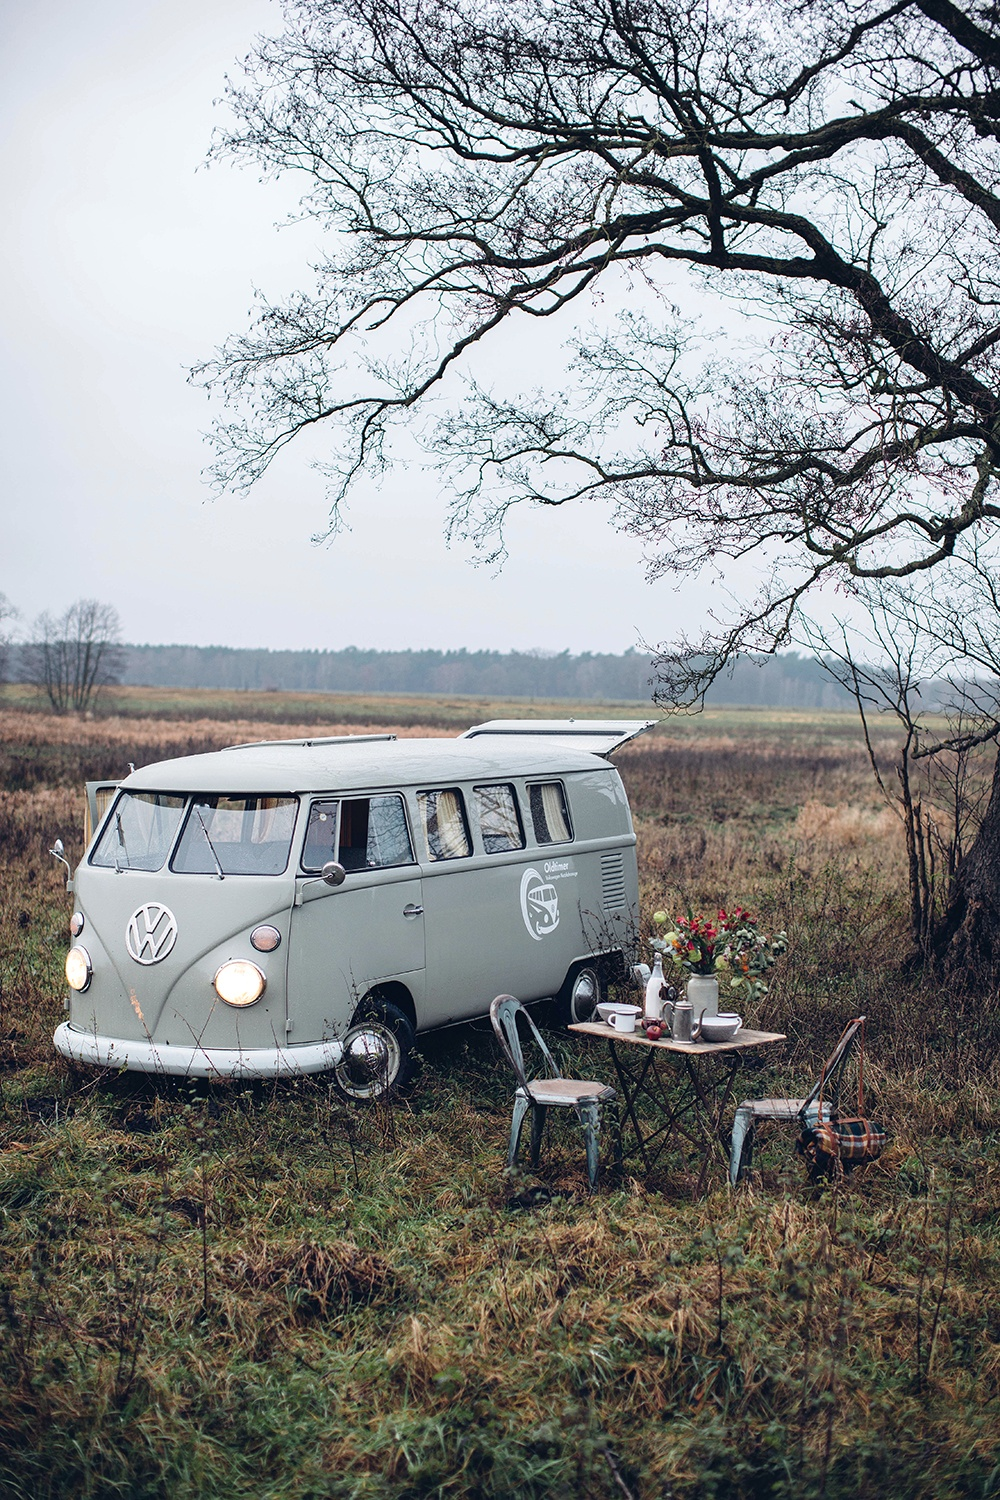 A foggy autumn day and a road trip with an old VW T1 bus